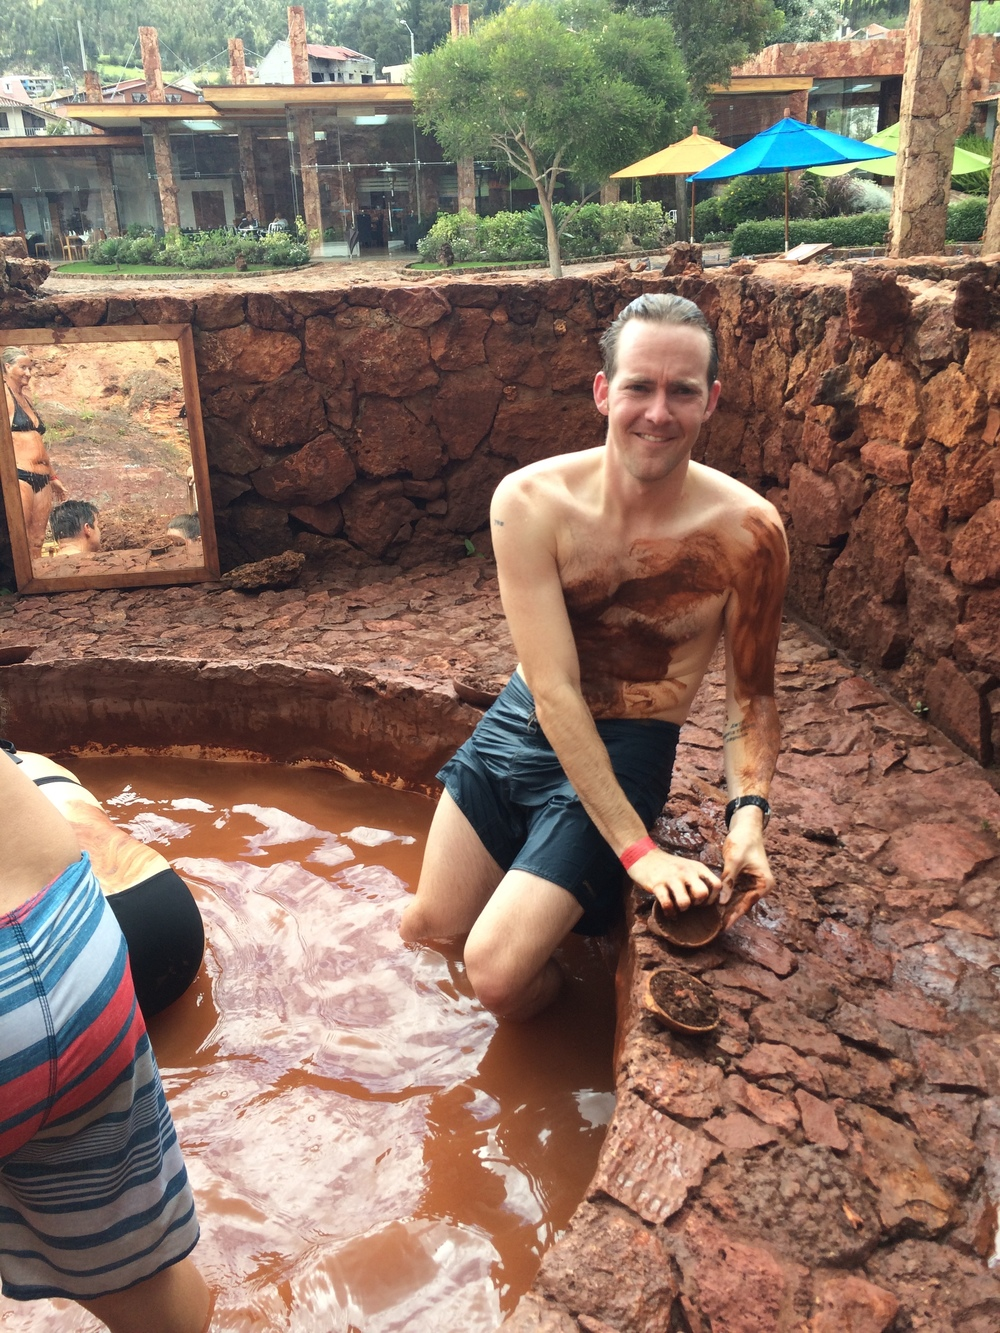 Despite his face, this mud spa was actually not painful.